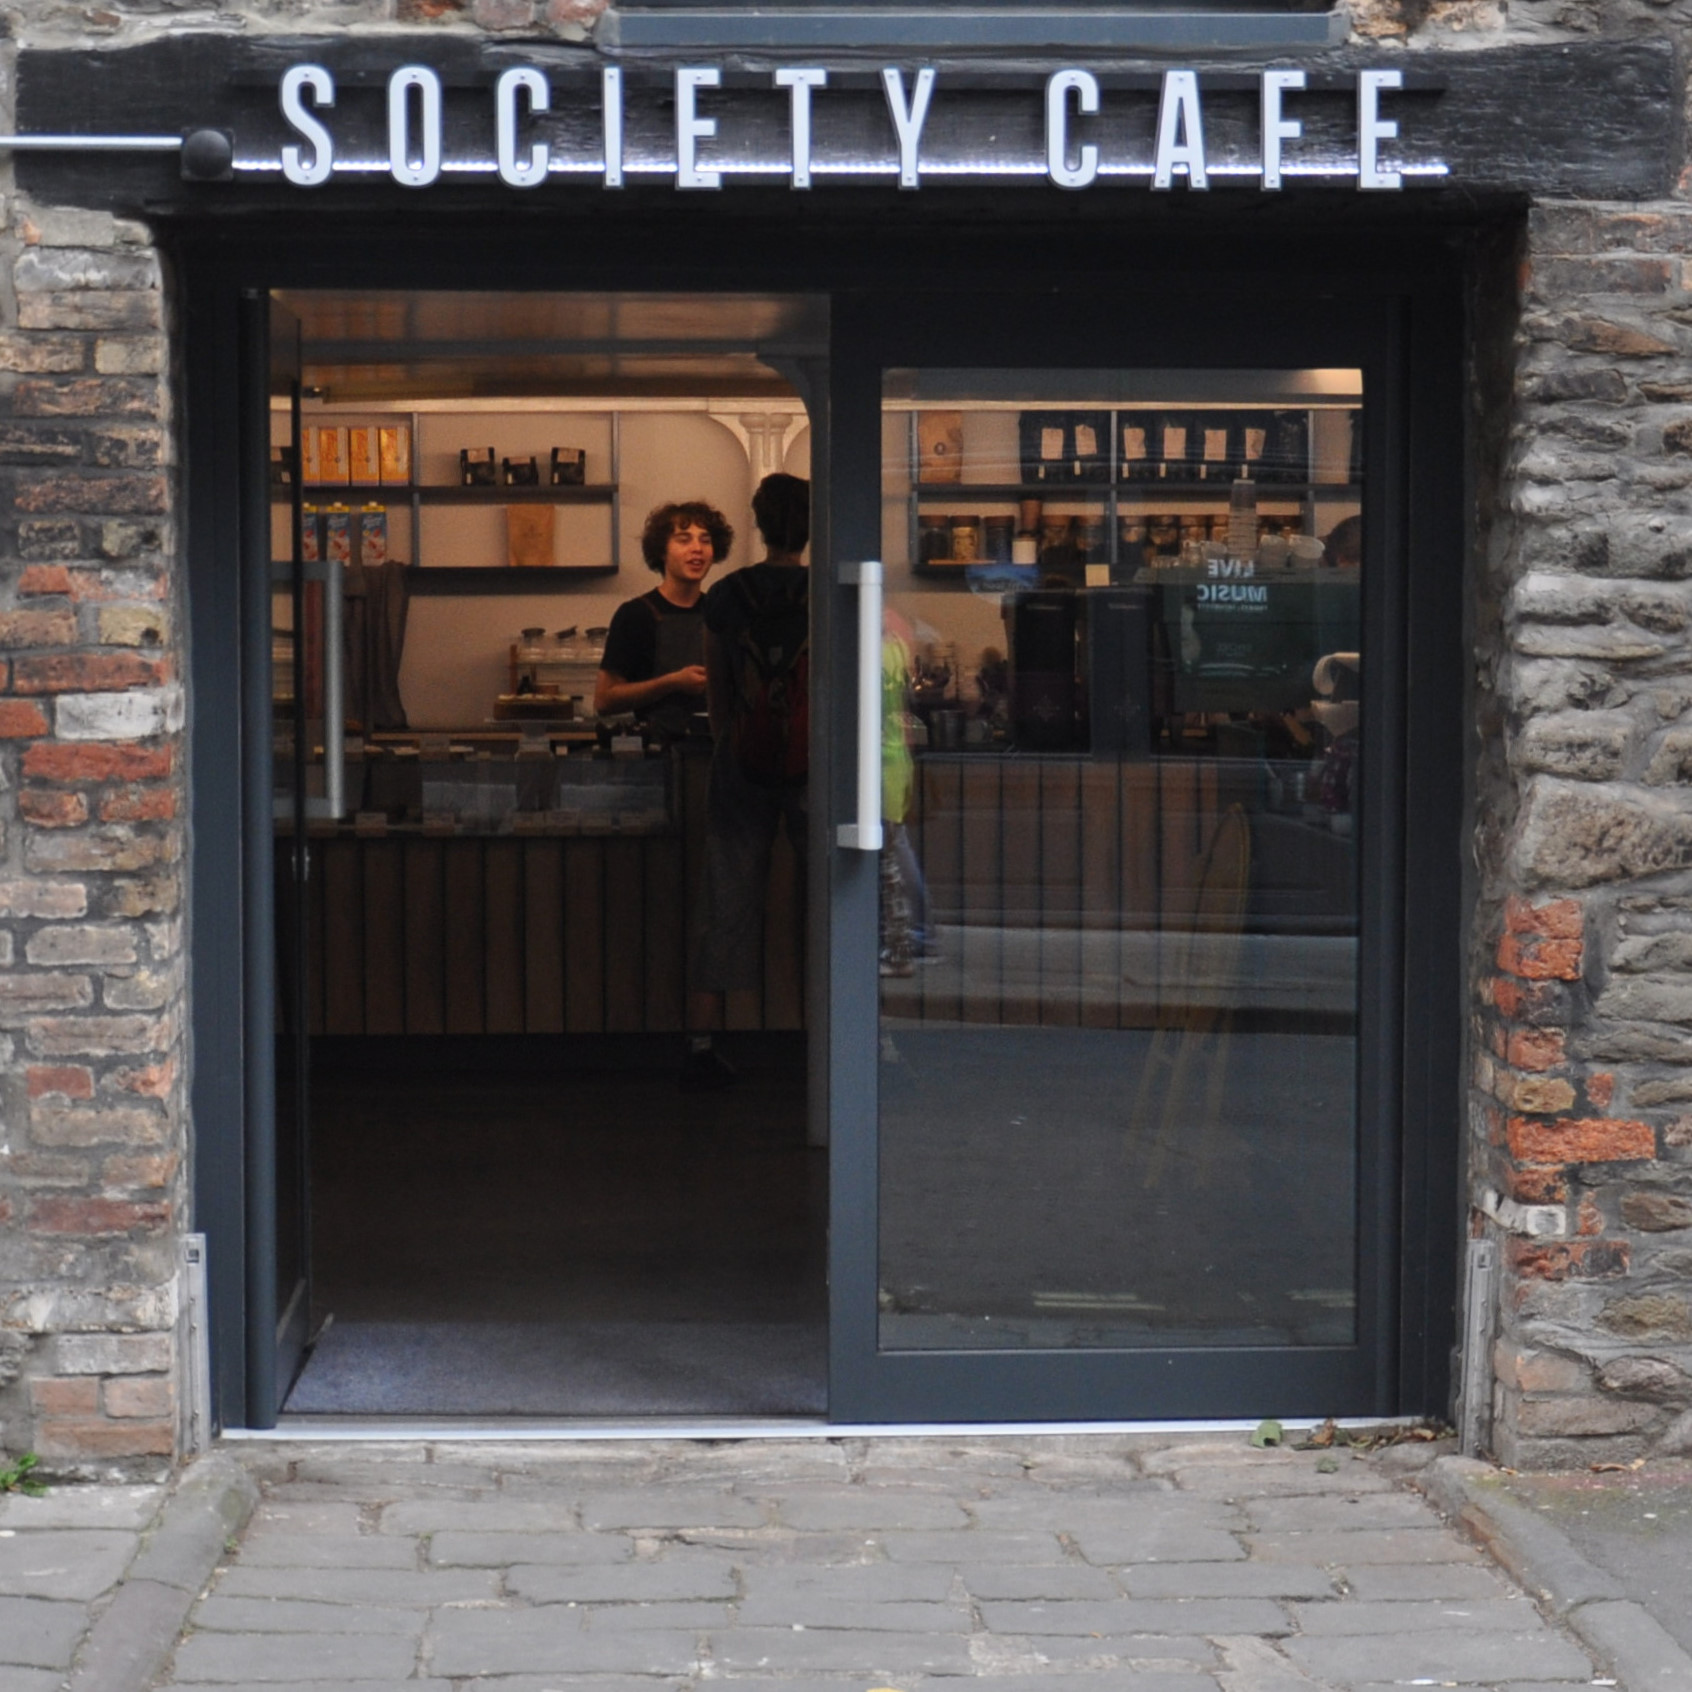 The main entrance to Society Cafe in Bristol, a pair of glass double-doors opening out onto Farr's Lane, with the counter directly ahead.